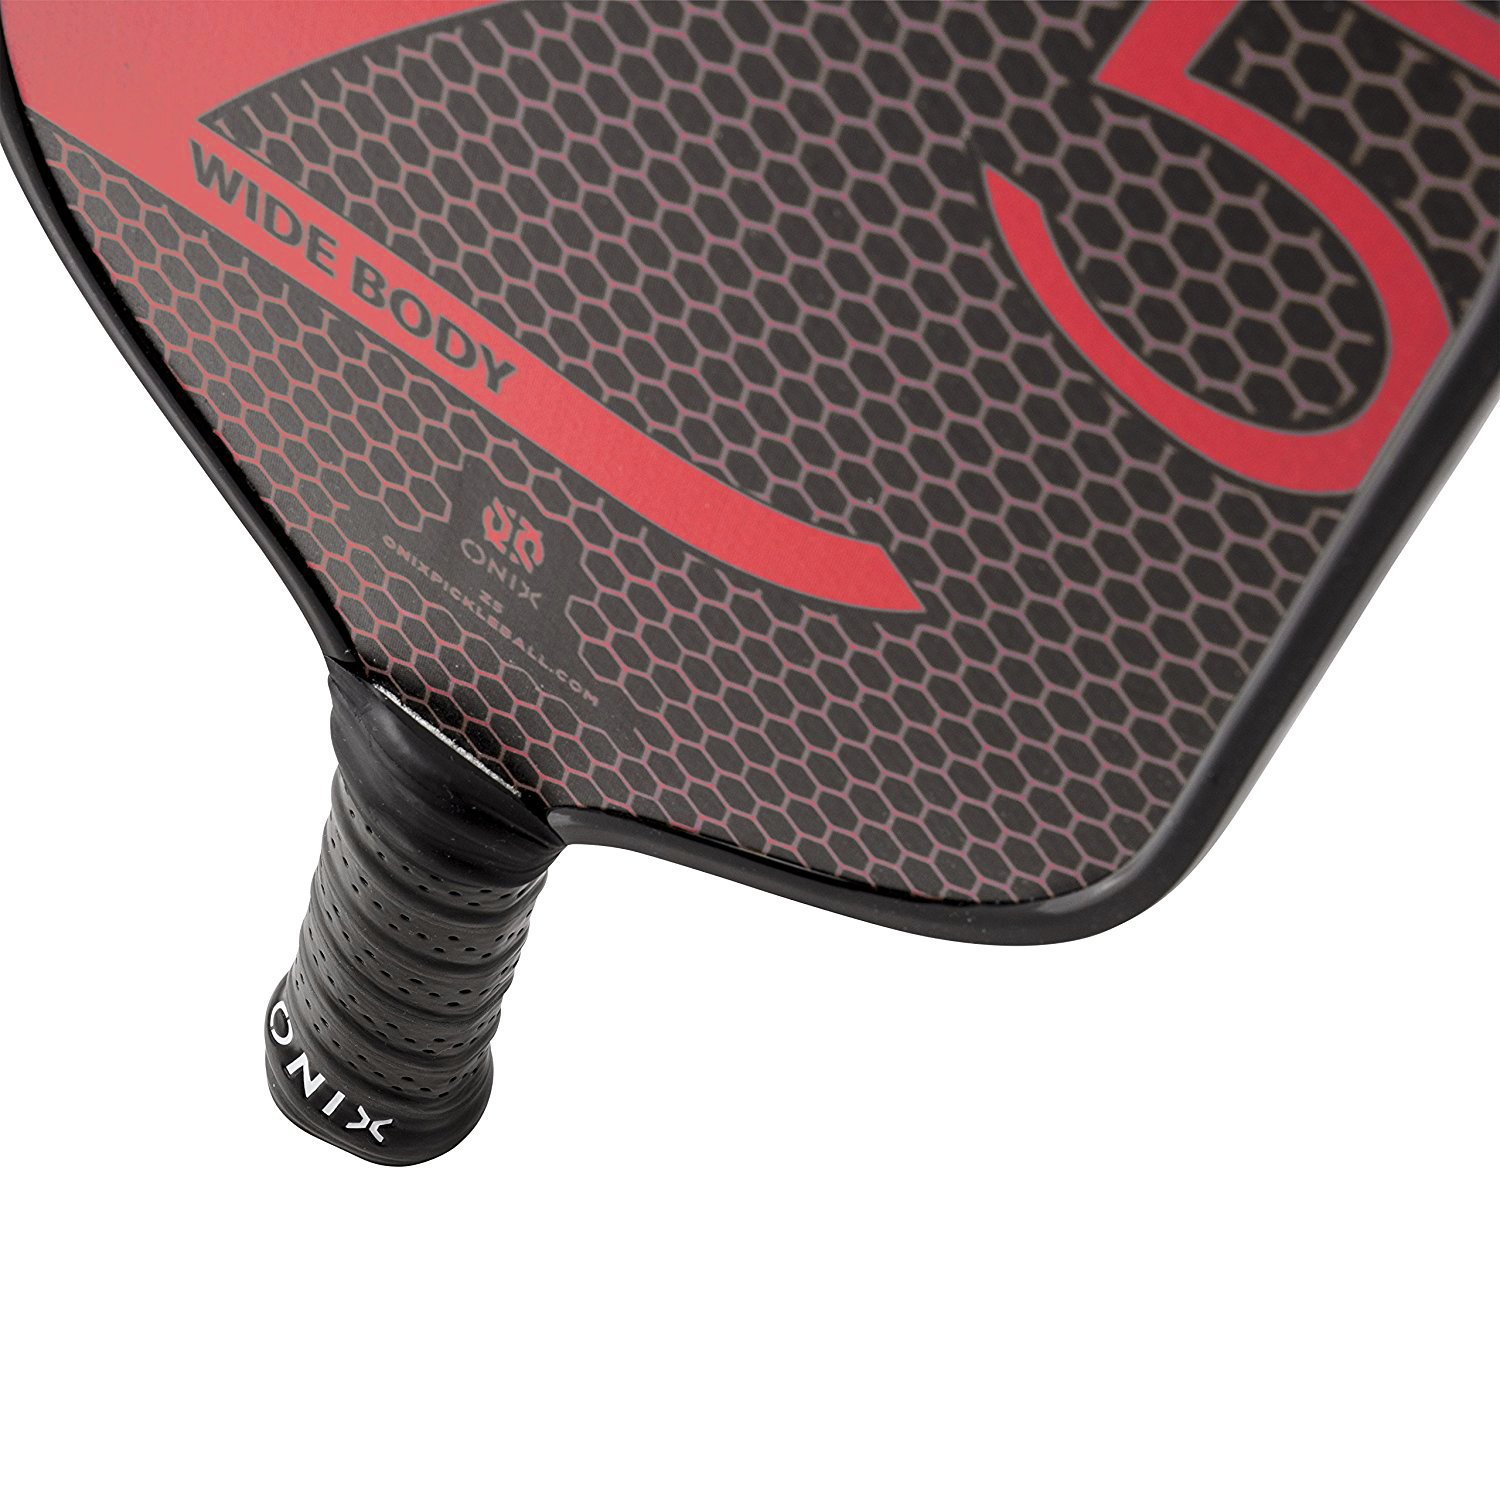 Onix Z5 Graphite Pickleball Paddle and Paddle Cover (Red) by Onix (Image #3)